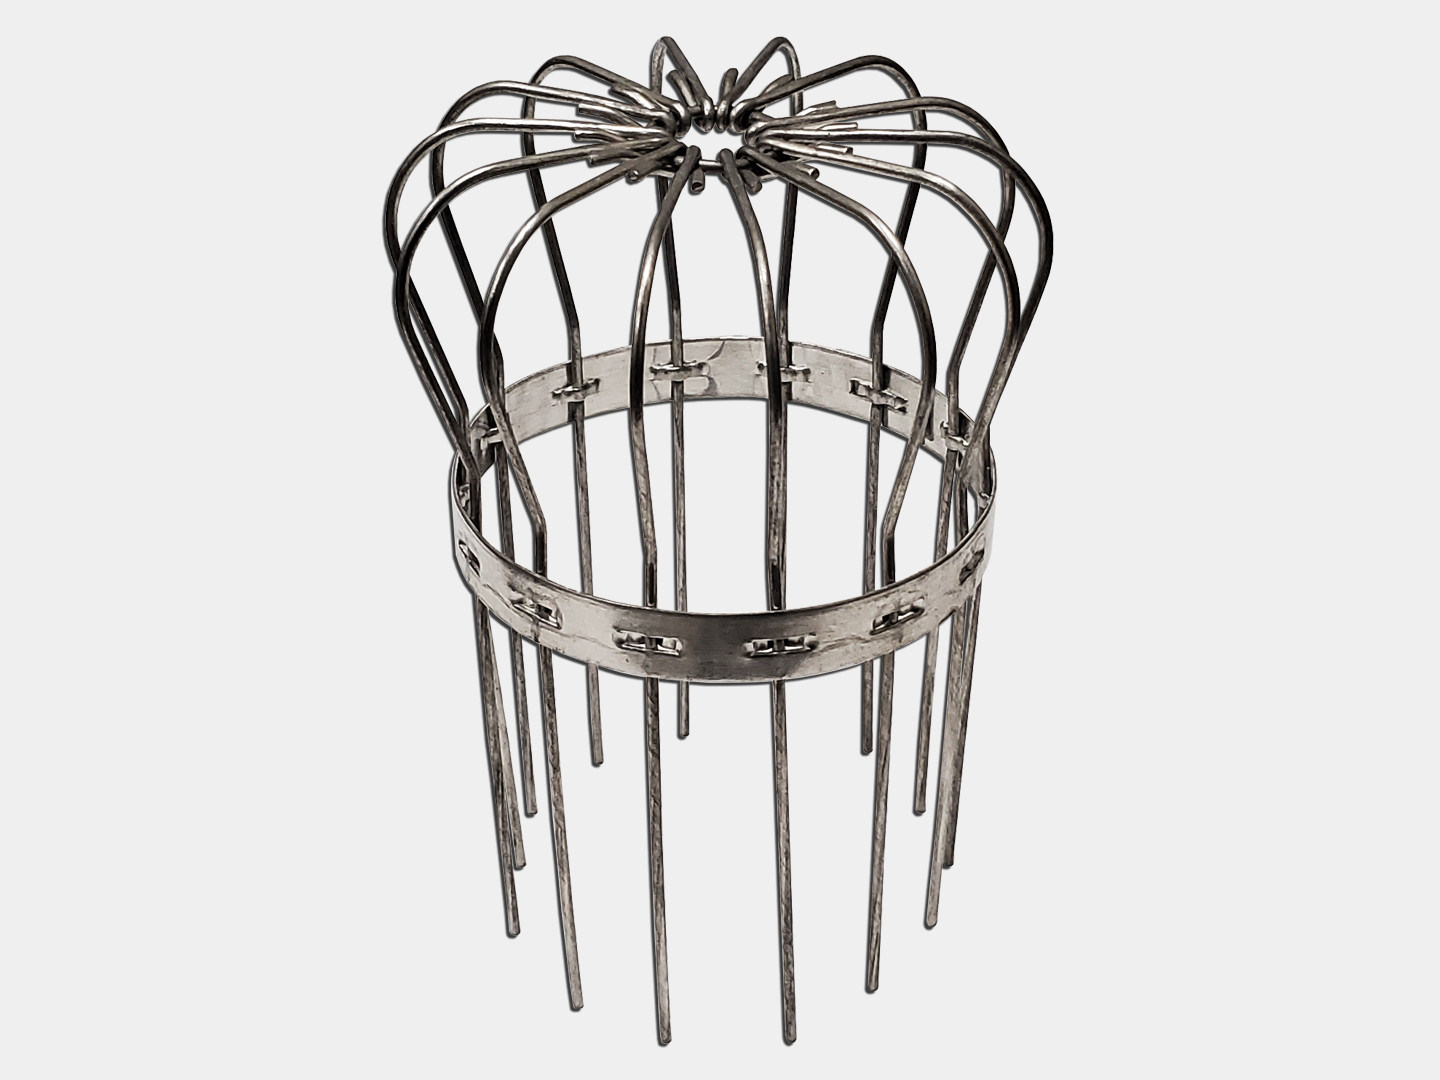 Aluminum wire strainer for gutter outlet